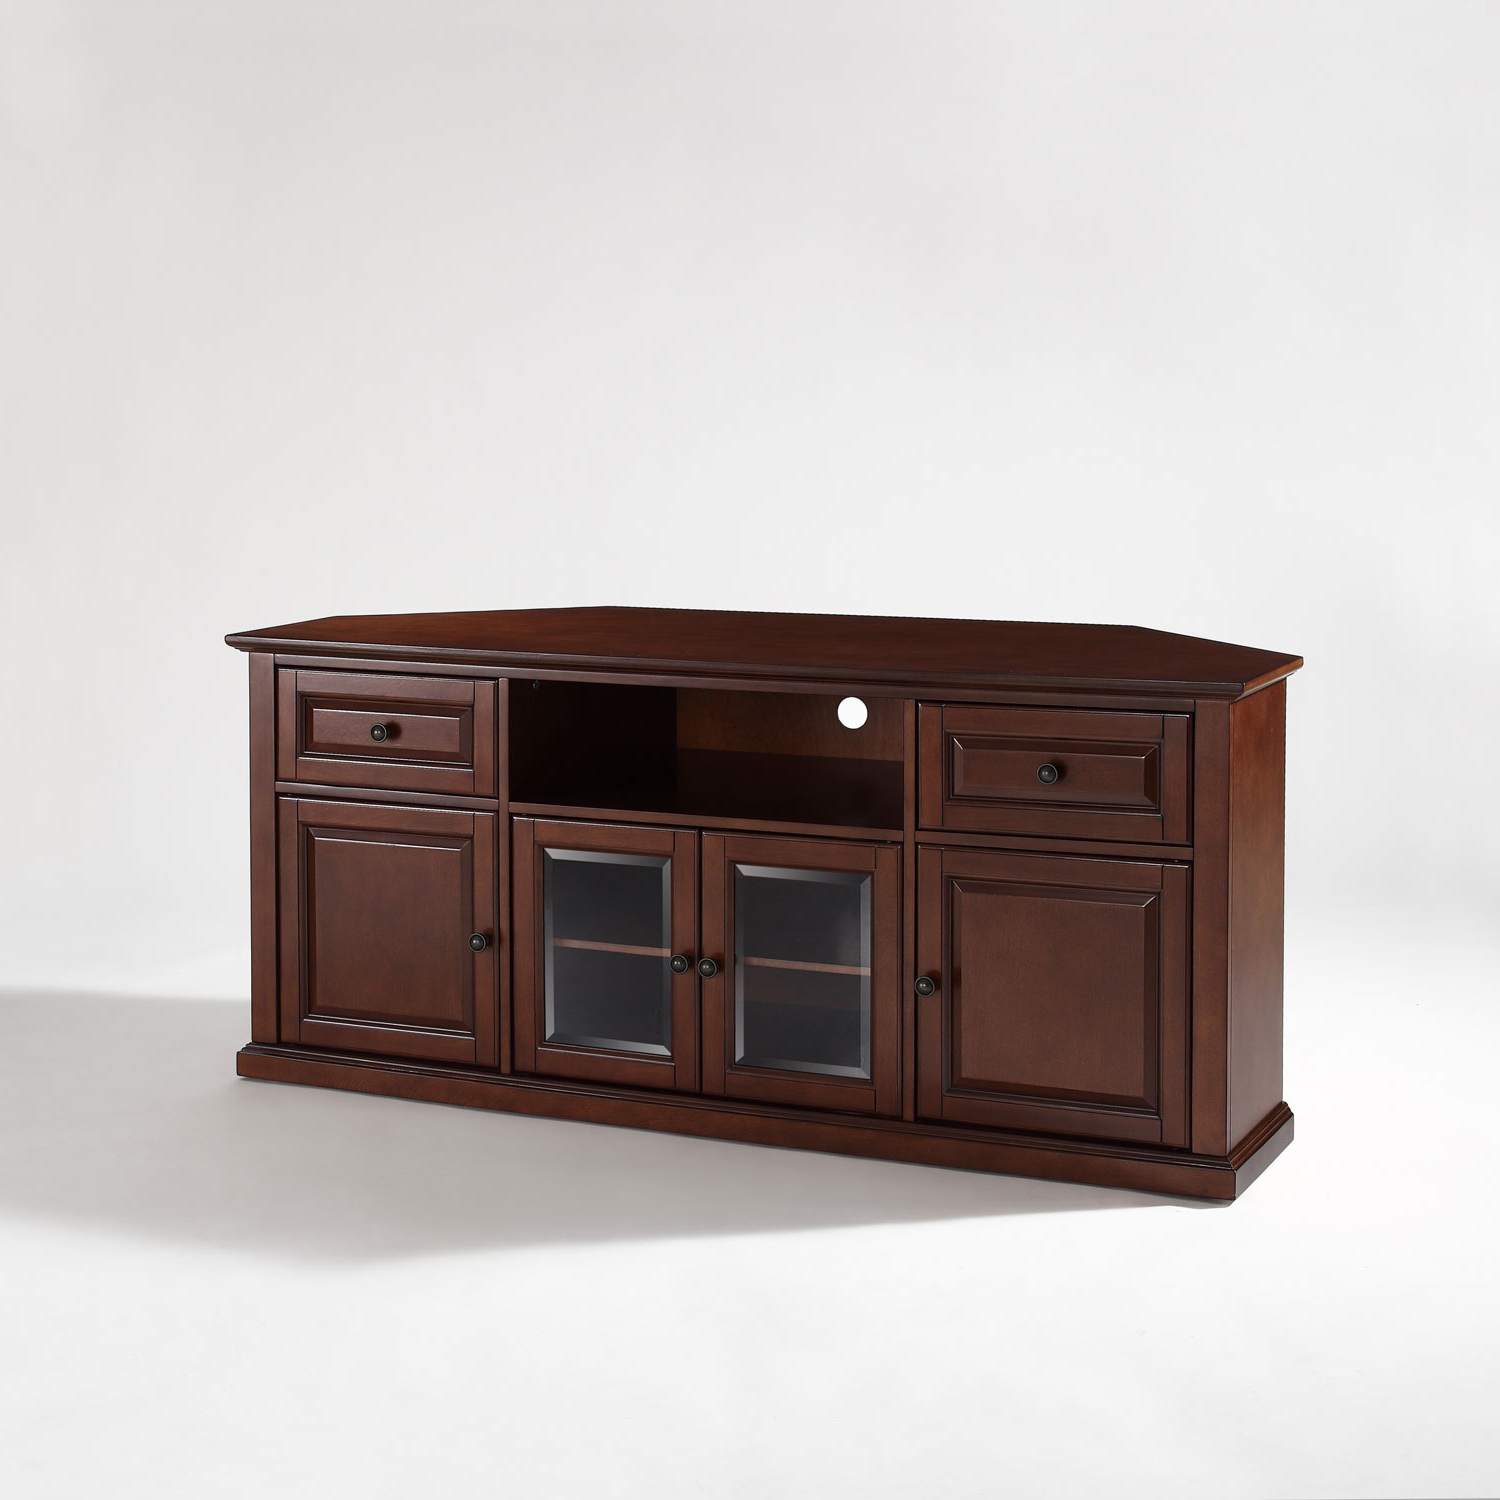 Corner Tv Stands For 60 Inch Tv Pertaining To Current Corner Tv Stand In Crosley Furniture Inch Vintage Mahogany Plans (View 7 of 20)